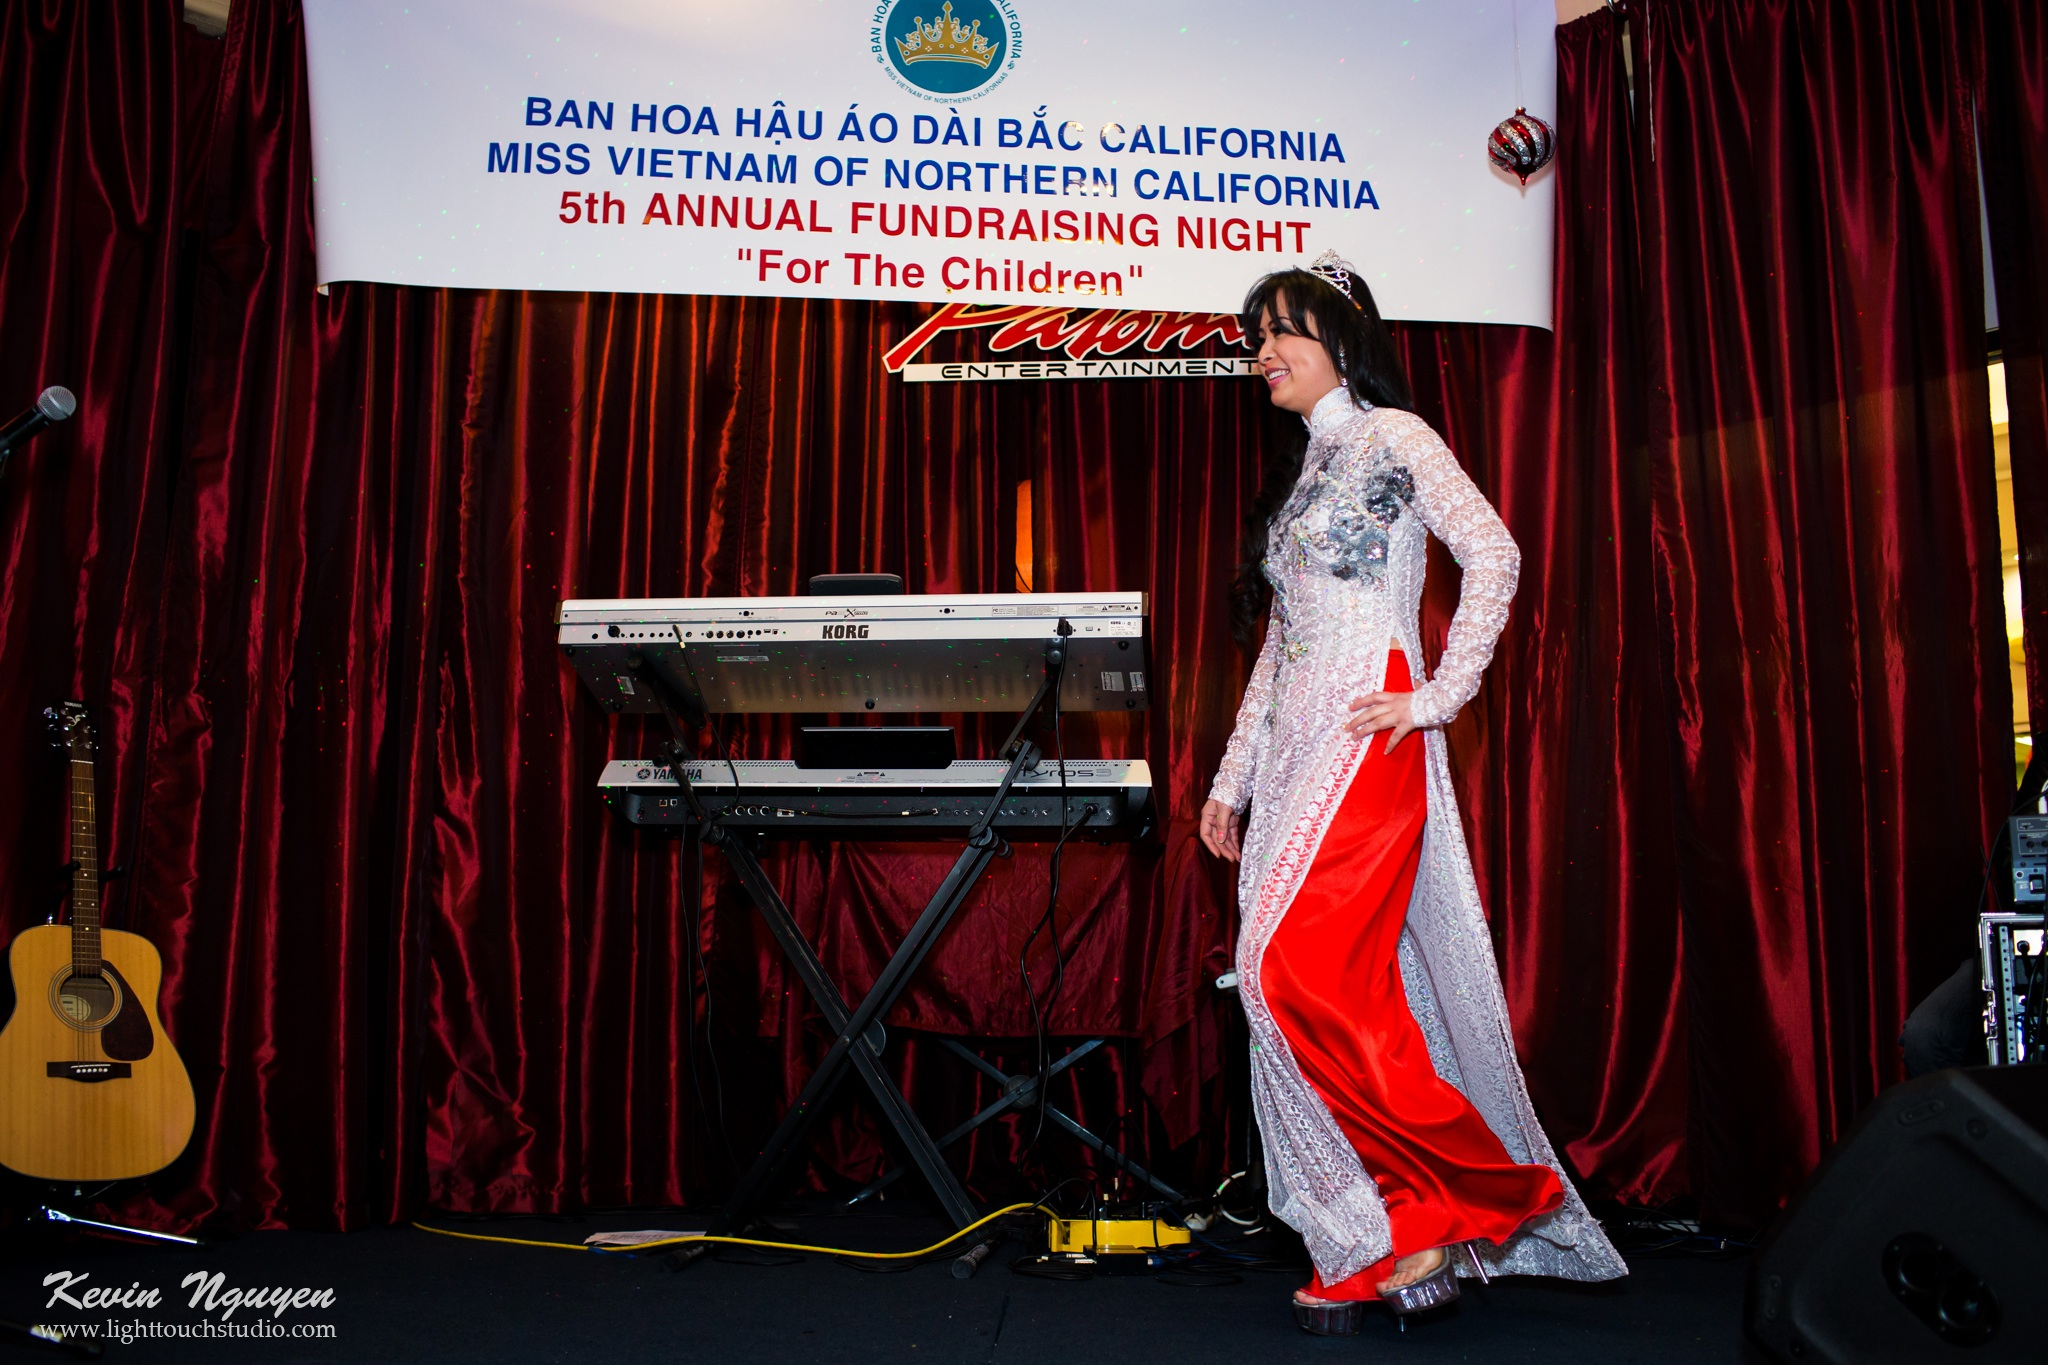 Charity Fundraiser 2012 - For the Children - Paloma, San Jose - Image 071